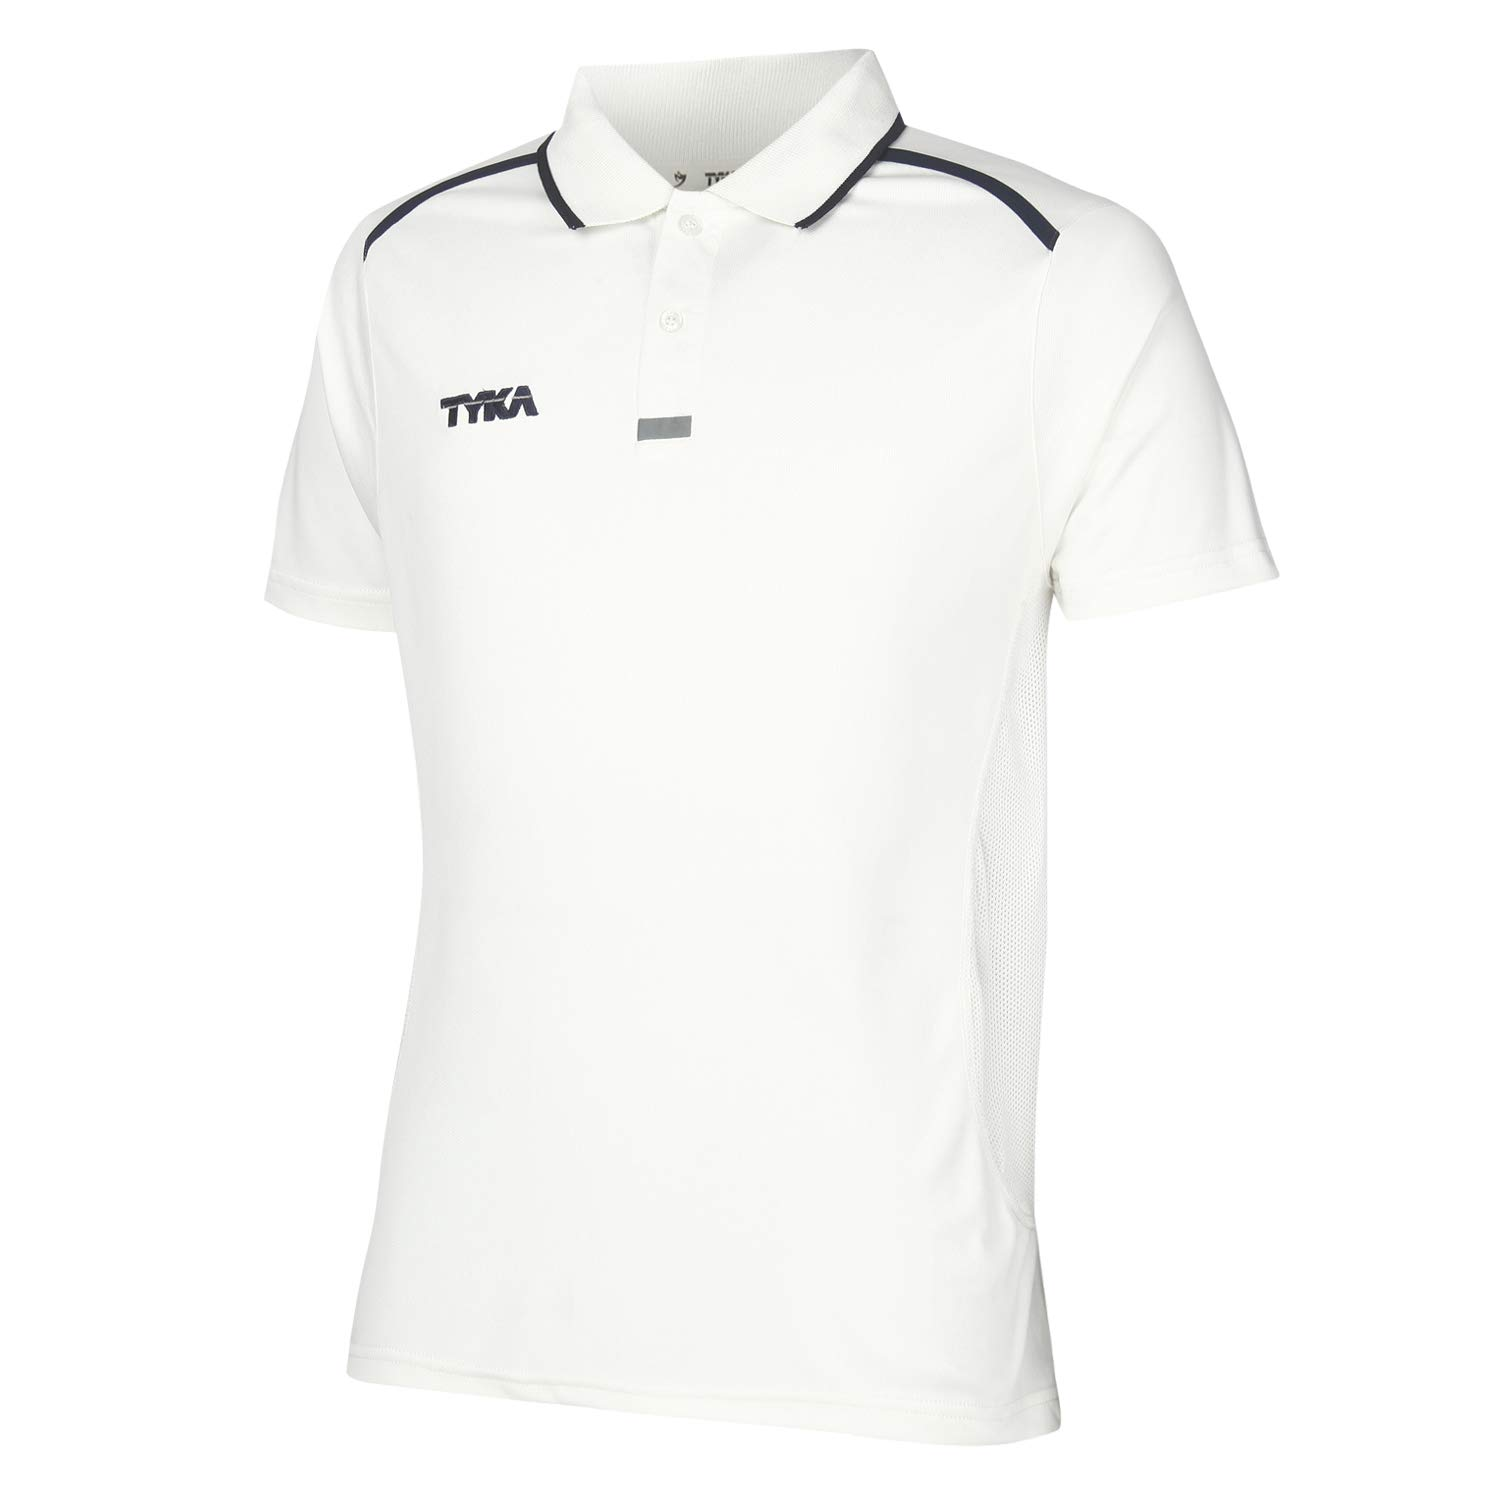 APEX Cricket Shirt Half Sleeves (Ranji Std.) (Off White, 3XL (46)) (B01MSCUL64) Amazon Price History, Amazon Price Tracker